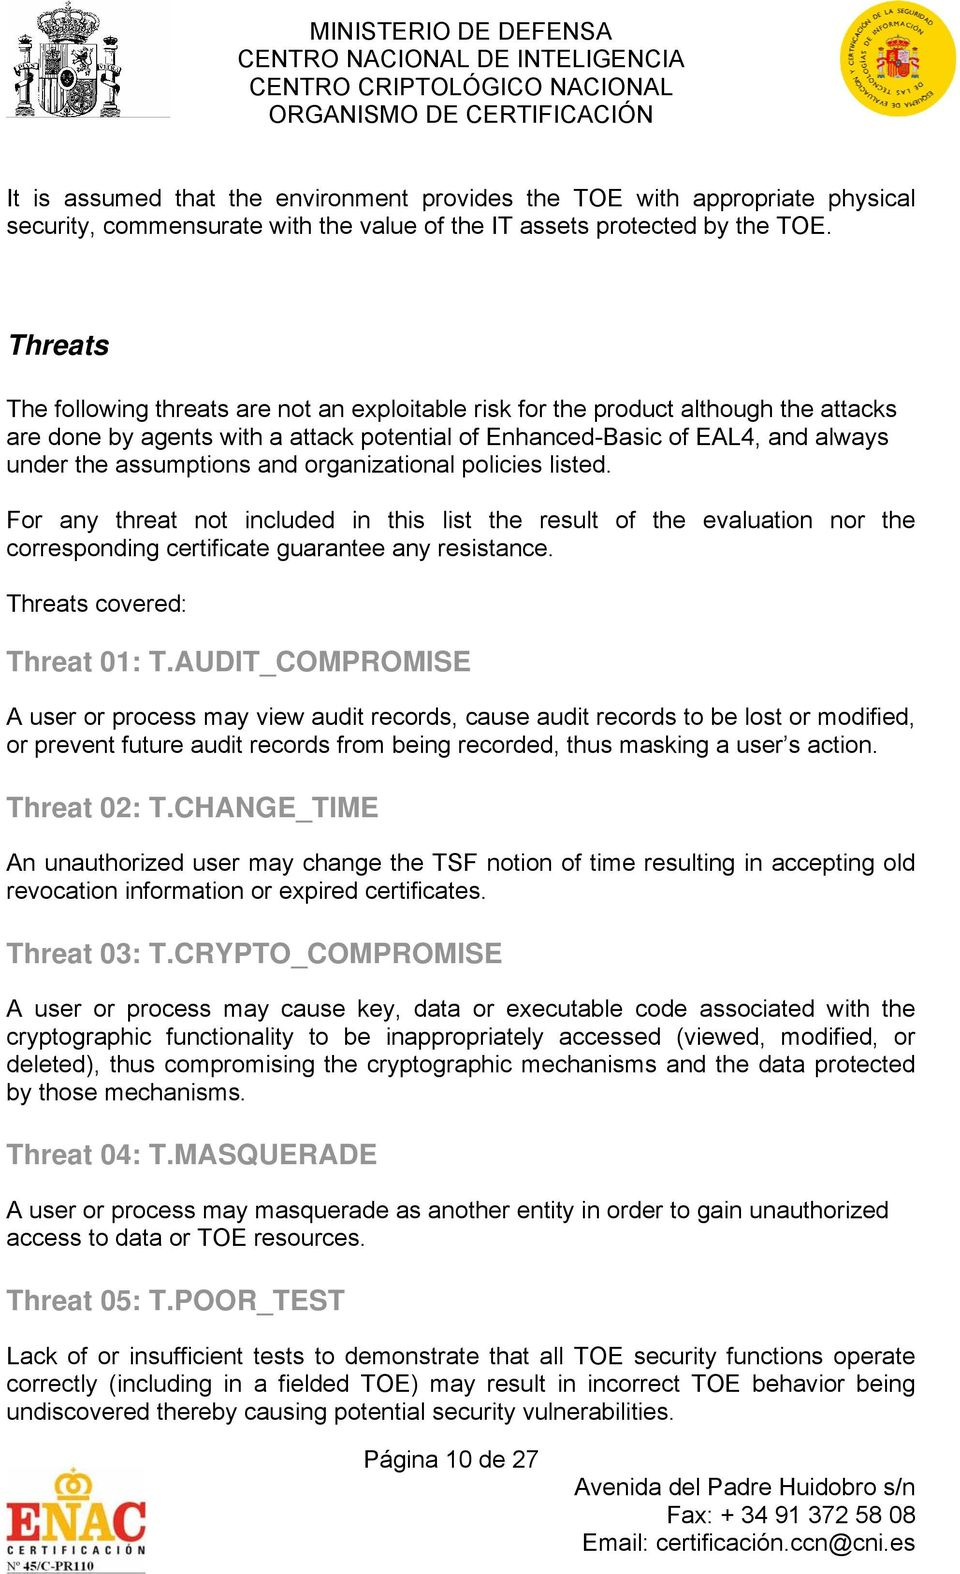 and organizational policies listed. For any threat not included in this list the result of the evaluation nor the corresponding certificate guarantee any resistance. Threats covered: Threat 01: T.